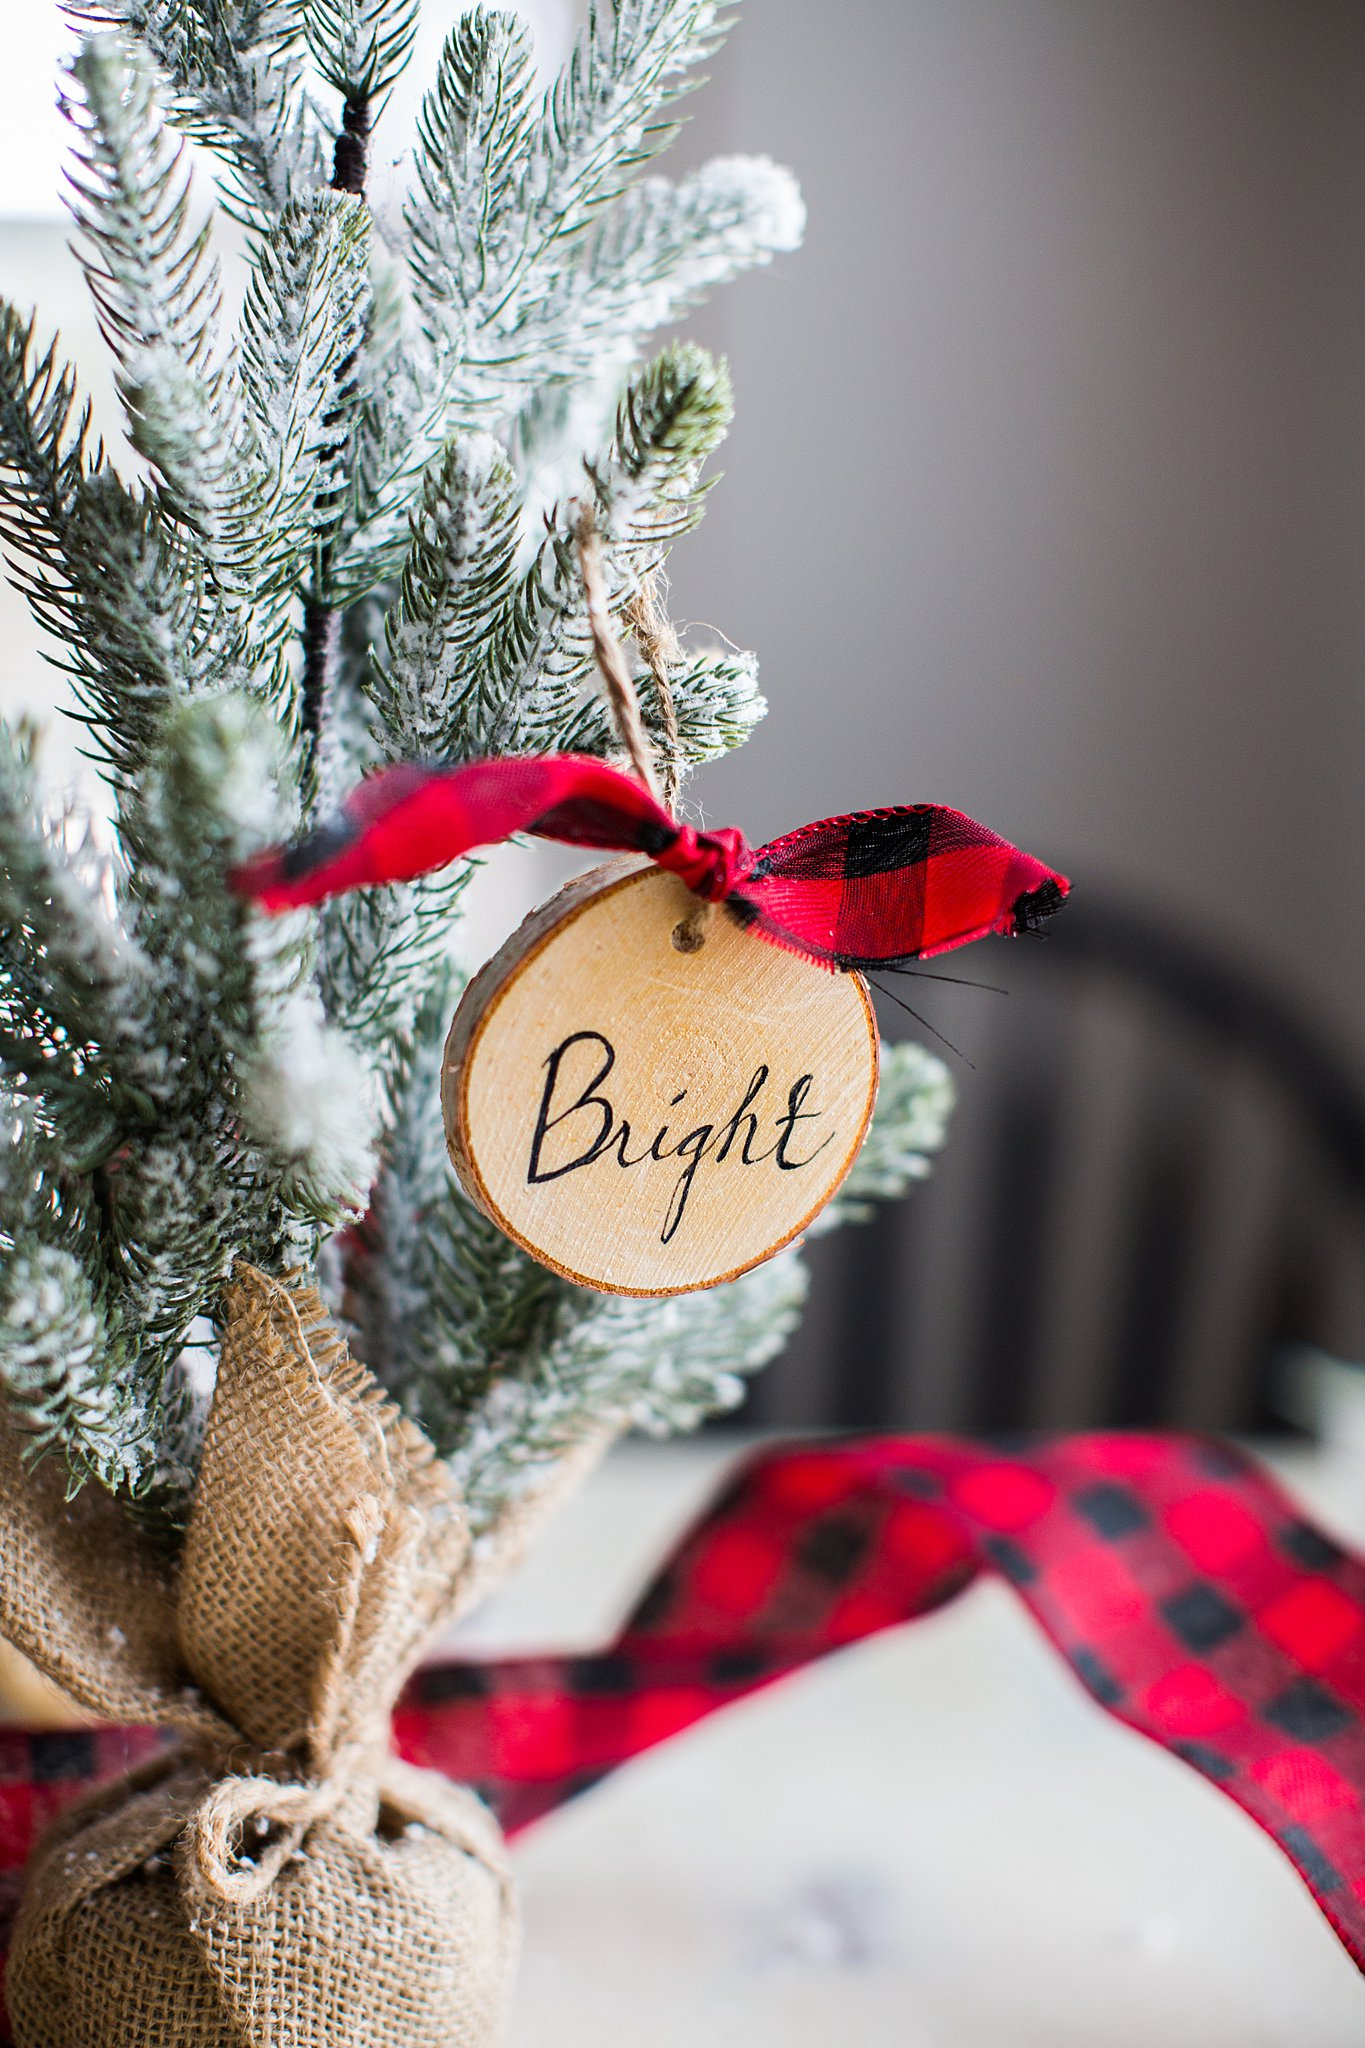 DIY Christmas gifts to save money